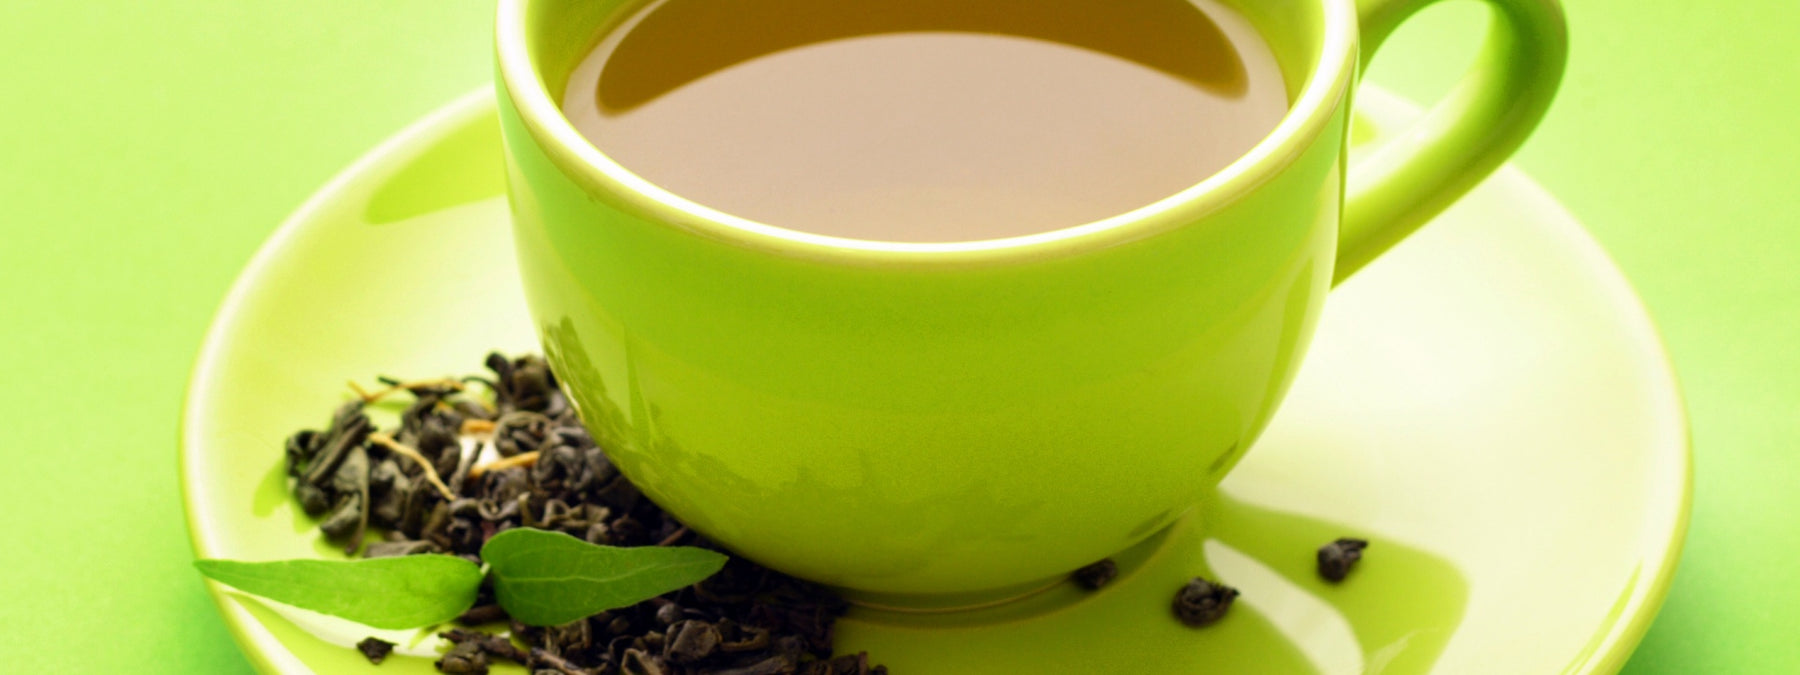 Oolong Tea - History, Uses, and Benefits